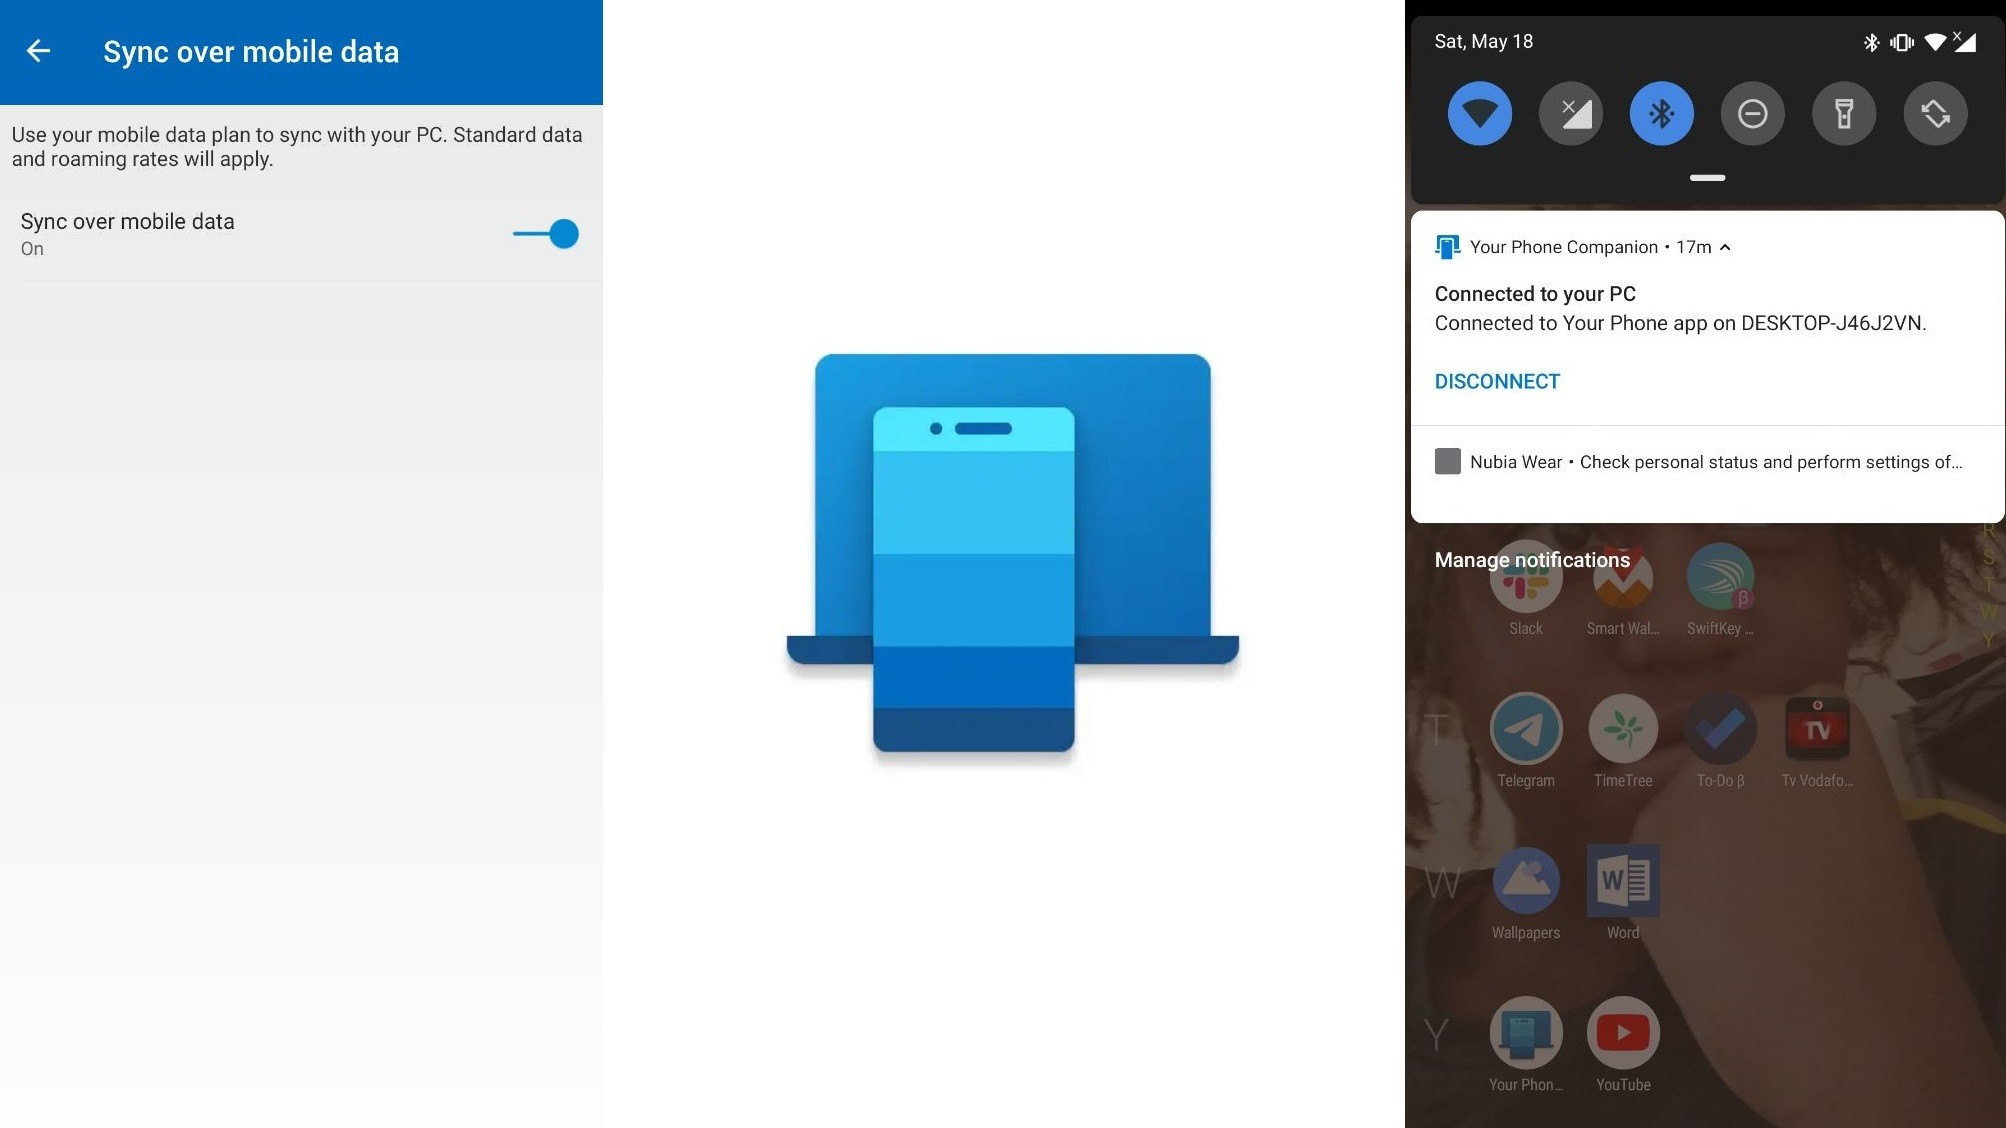 Your Phone Companion gets a new icon and mobile data sync